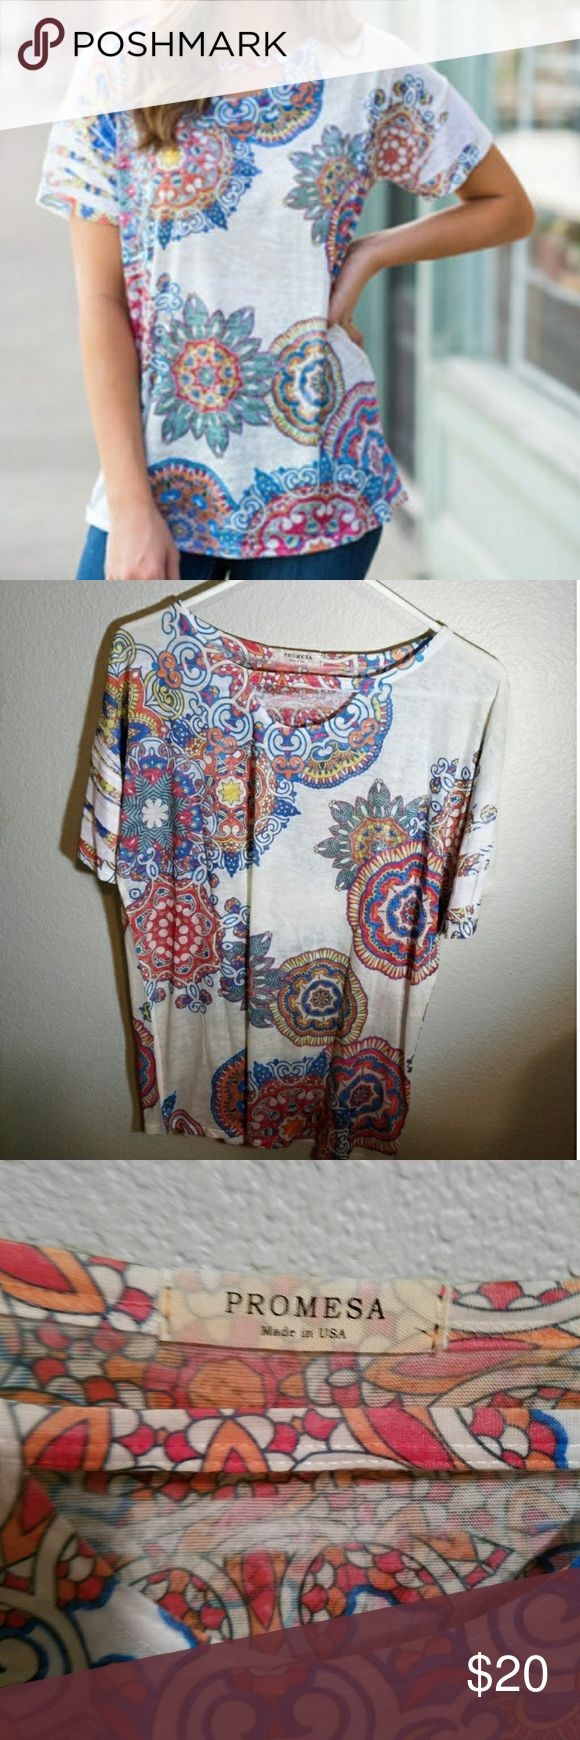 SALE NWOT Large Promesa medallion tee This is a large boho tee by Promesa with a colorful kaleidoscope or medallion design. New without tags. I purchased it from an online boutique. 70% polyester, 30% rayon. Made in USA. Promesa Tops Tees - Short Sleeve